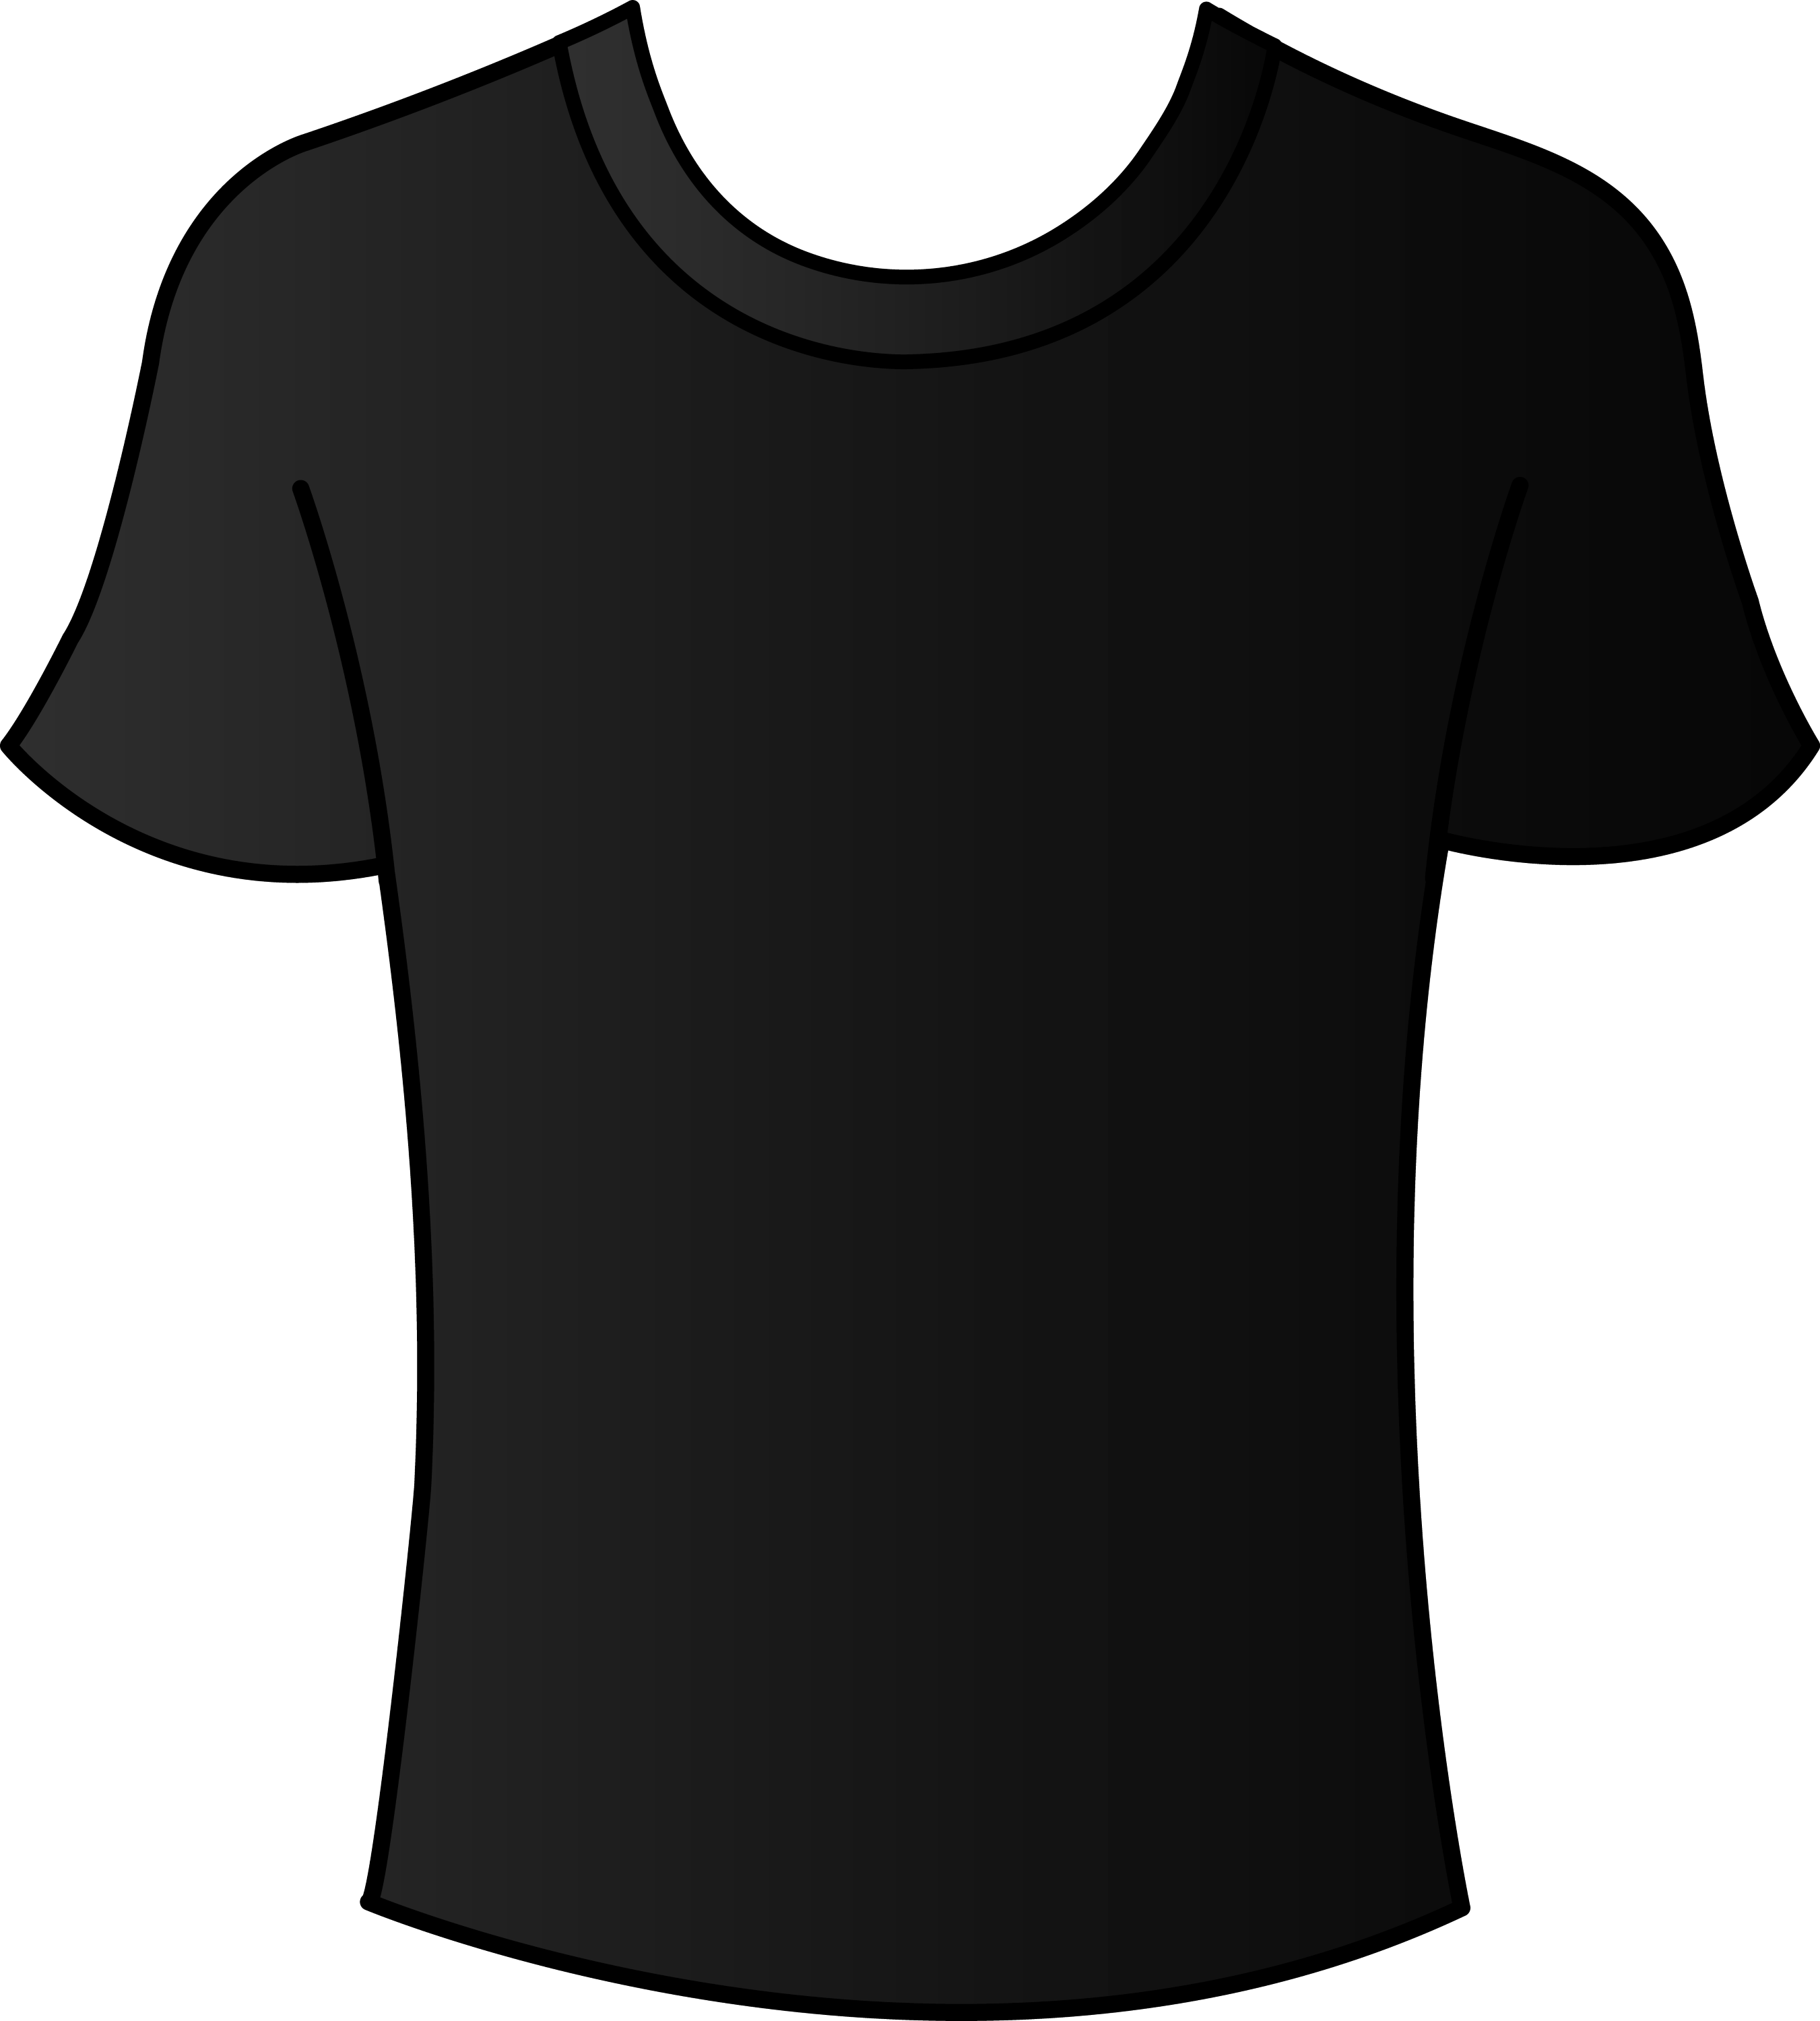 Mens black t shirt template free clip art